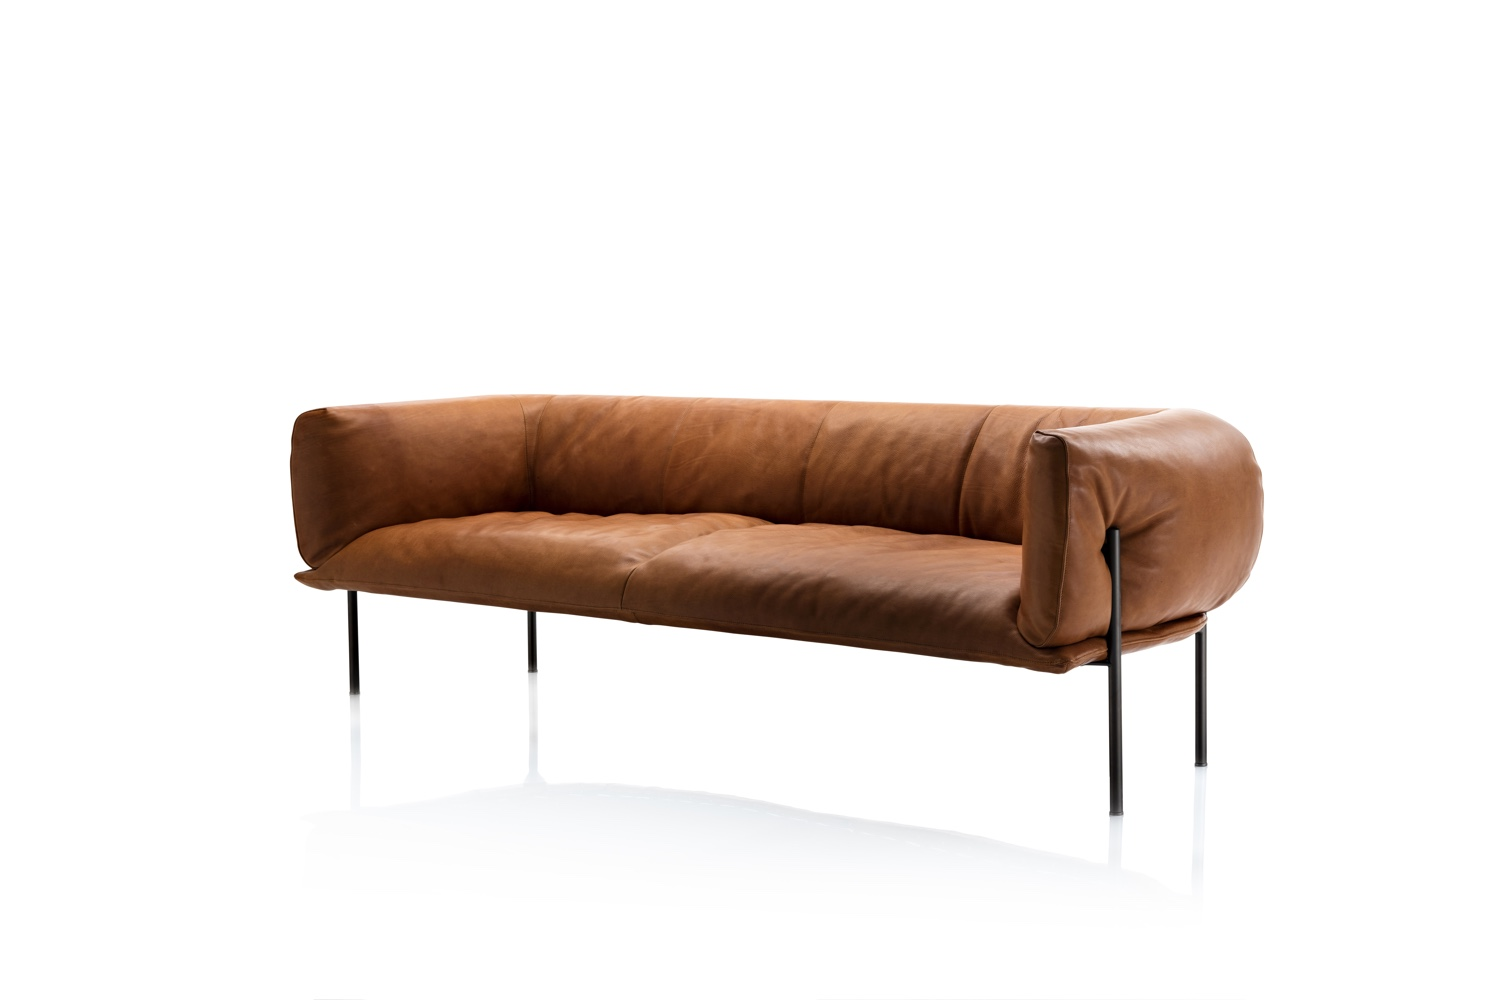 Rondo sofa by Lucy Kurrein and Molinari Design.